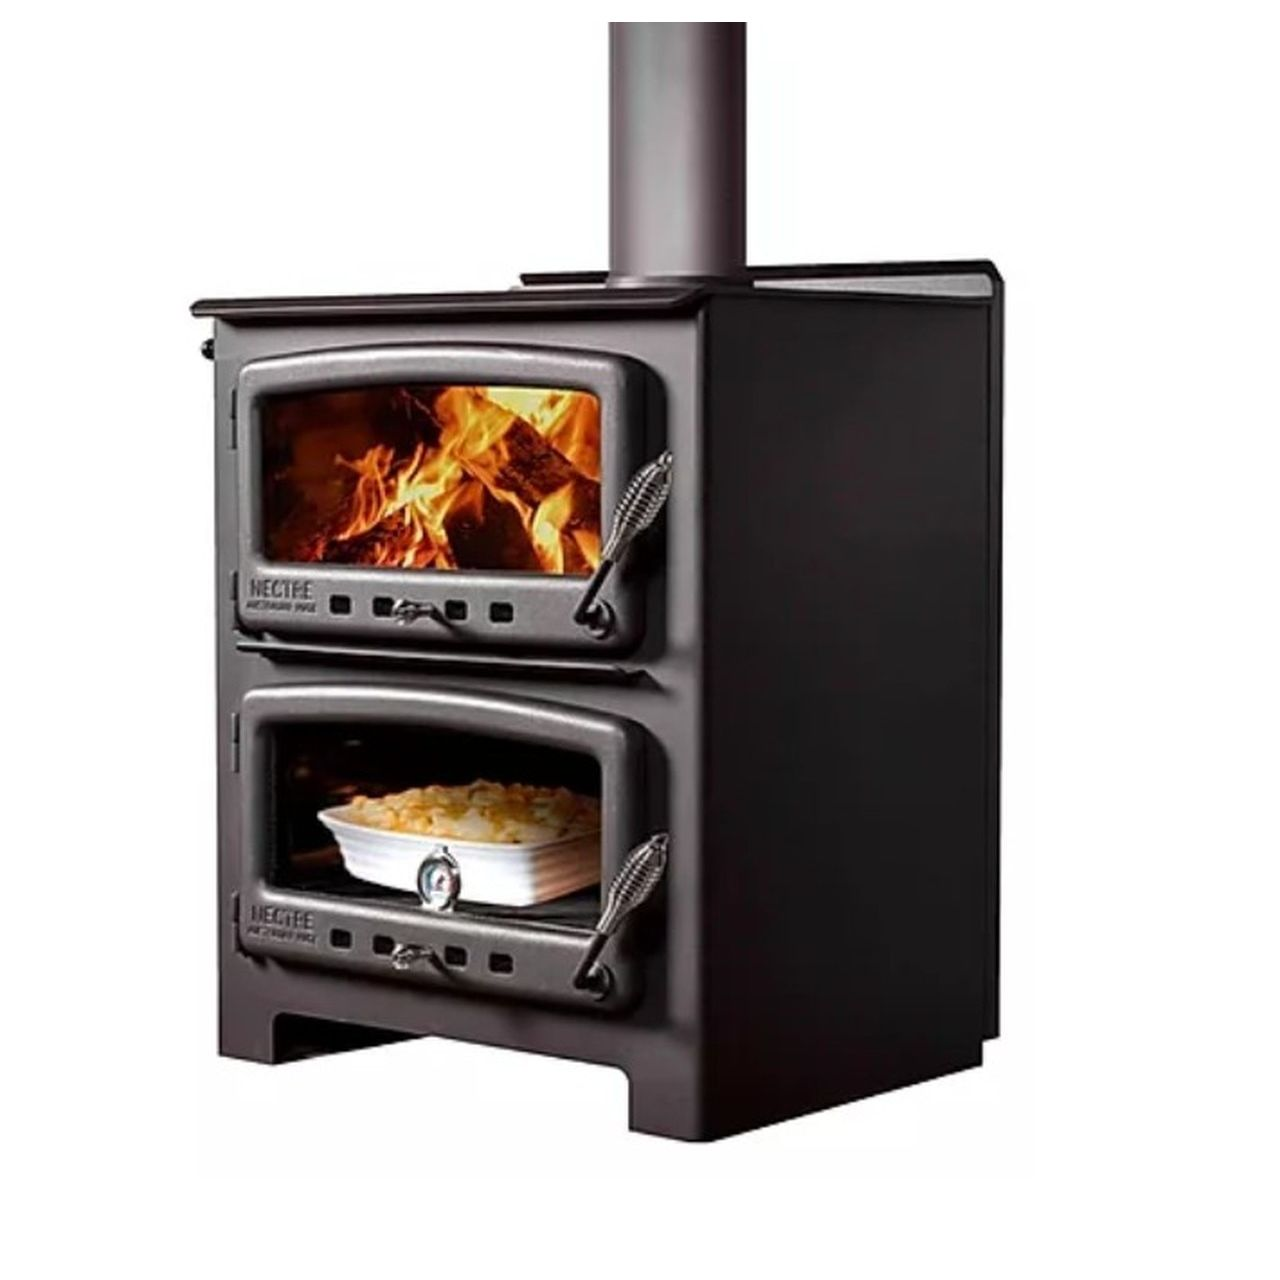 Nectre N550W 65000 BTU Wood-Fired Oven With Water Jacket